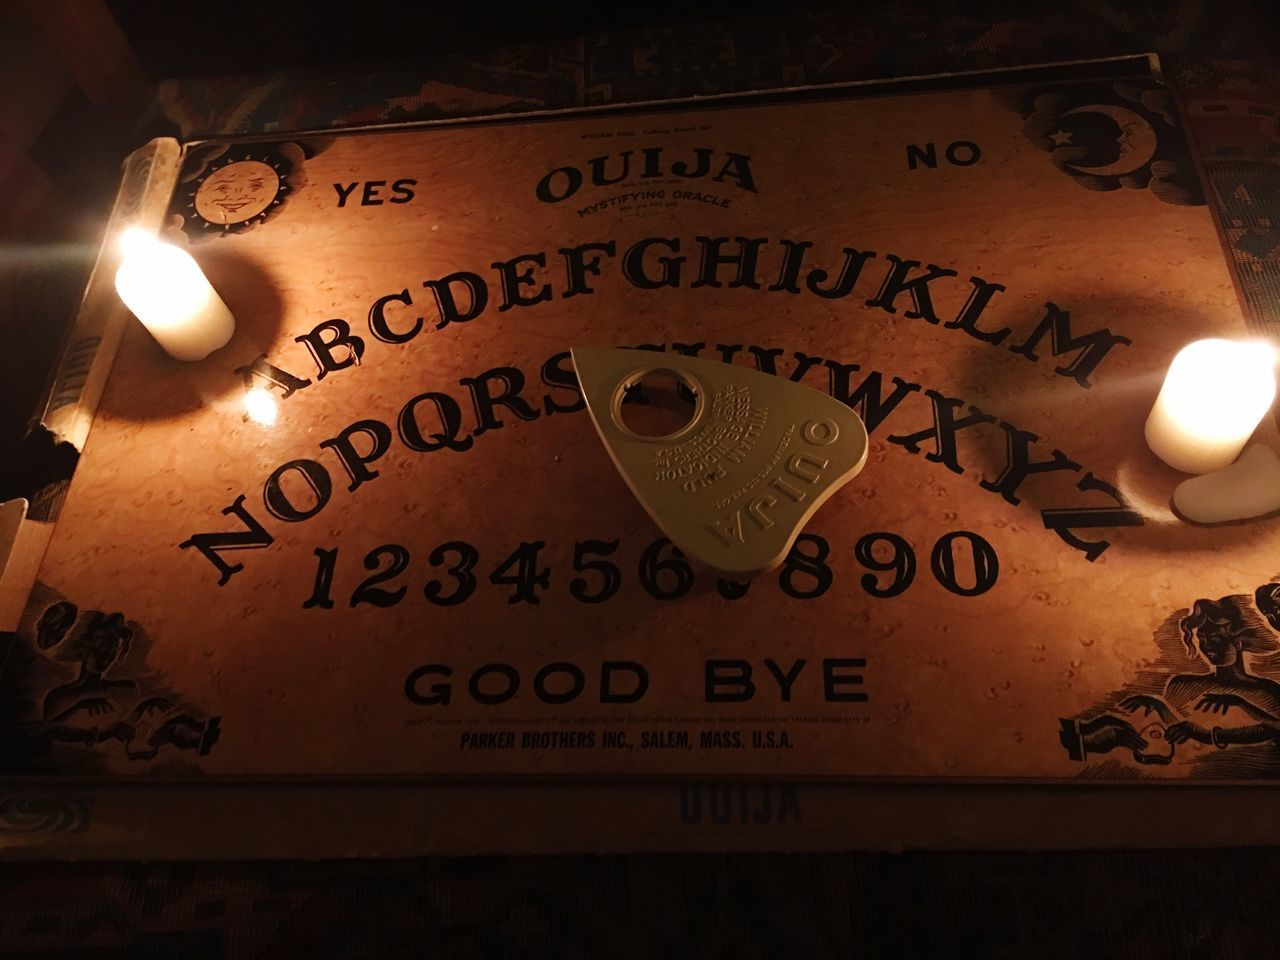 Let's talk Ouija Ouija Board  Talking Spooky Nightphotography Candlelight Ghosts Spirits Spiritual Darkness And Light Dark